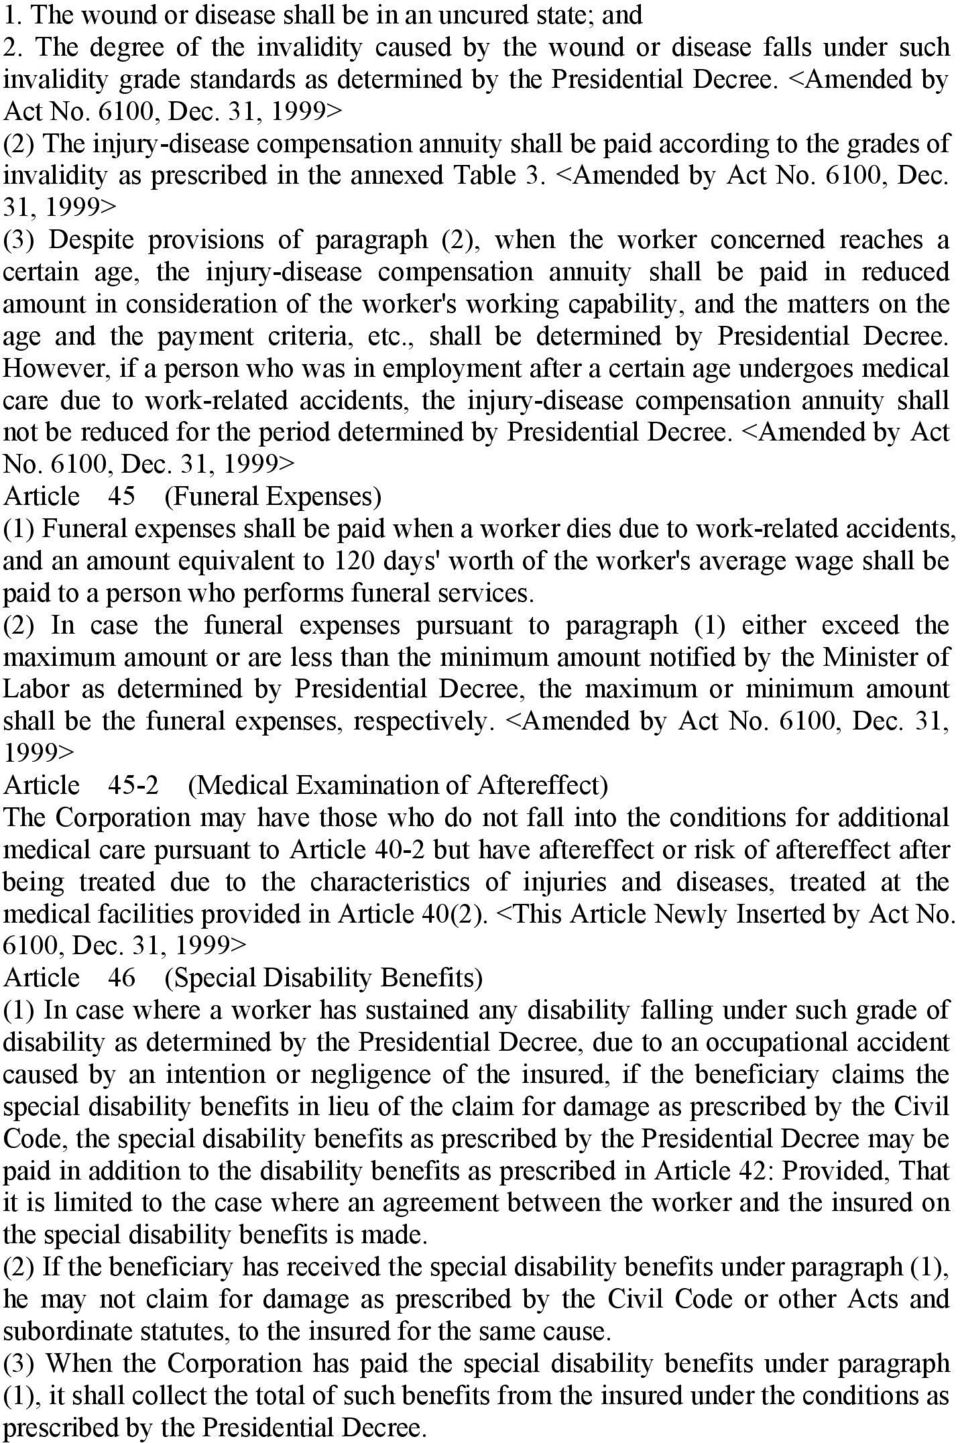 31, 1999> (2) The injury-disease compensation annuity shall be paid according to the grades of invalidity as prescribed in the annexed Table 3. <Amended by Act No. 6100, Dec.